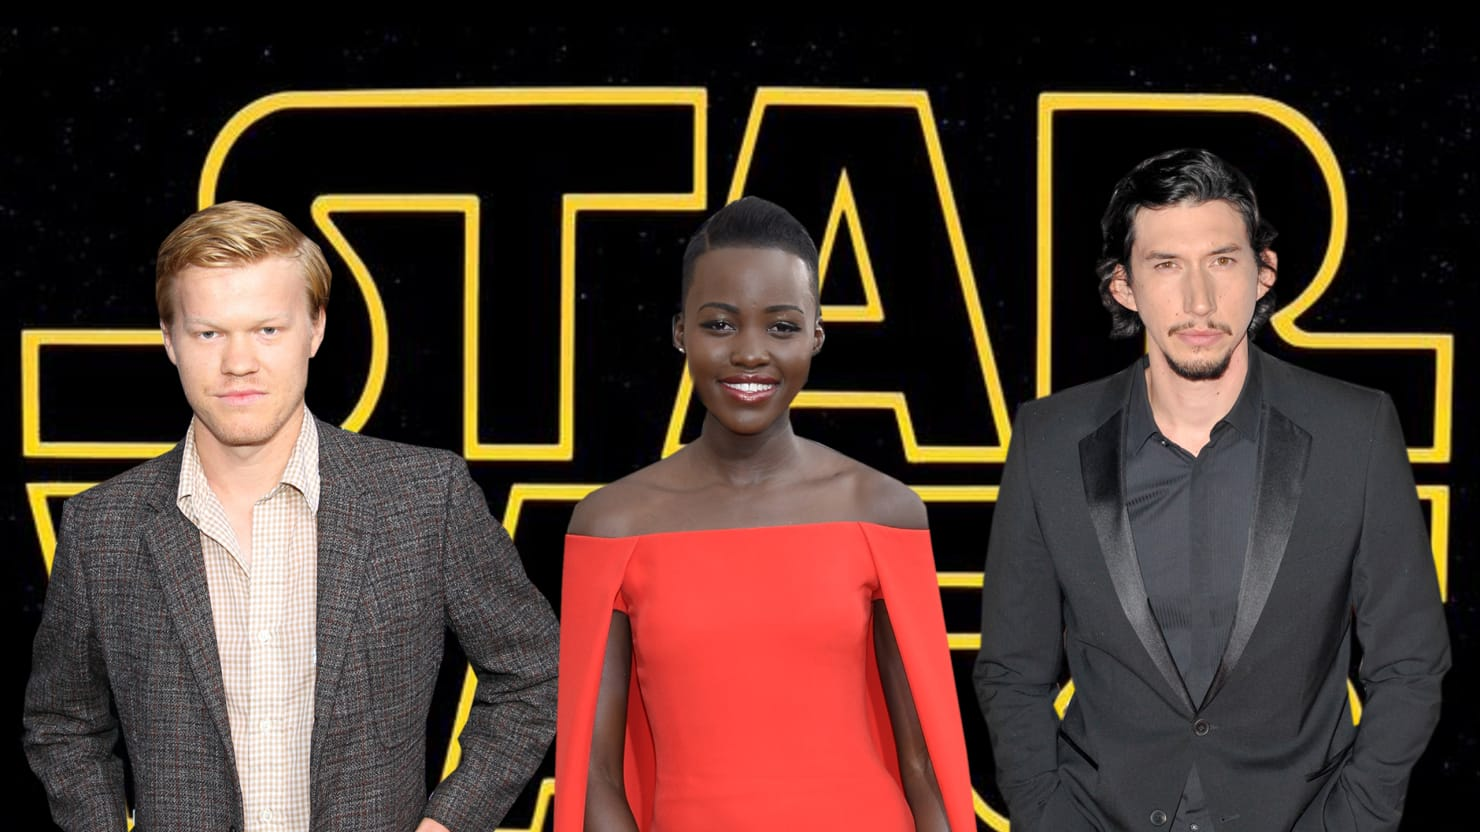 The Ultimate Guide to 'Star Wars: Episode VII'